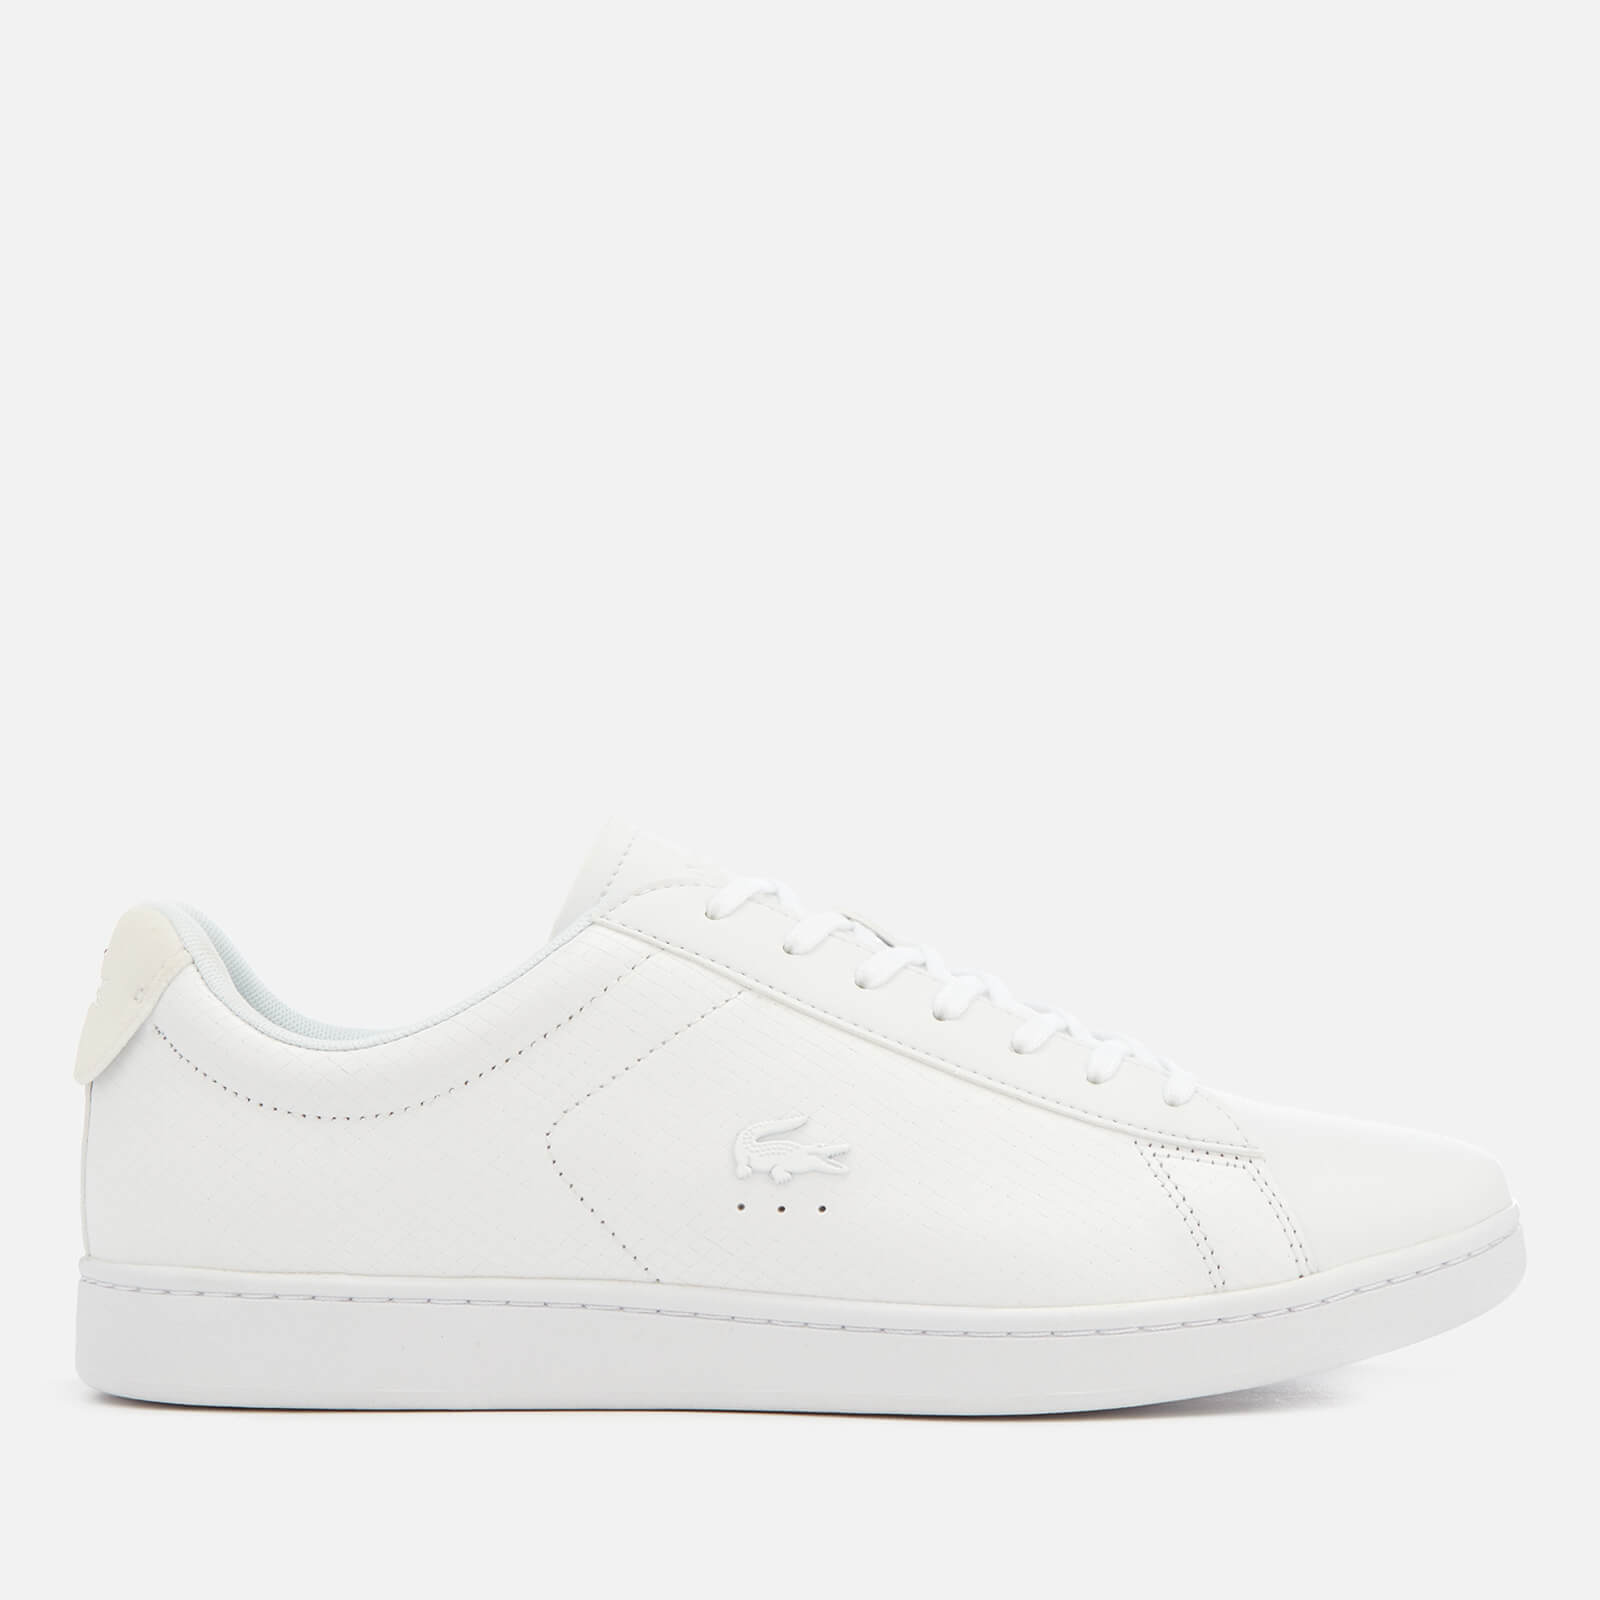 f64bde5aa72605 Lacoste Men s Carnaby Evo 318 7 Croc Leather Trainers - White - Free UK  Delivery over £50